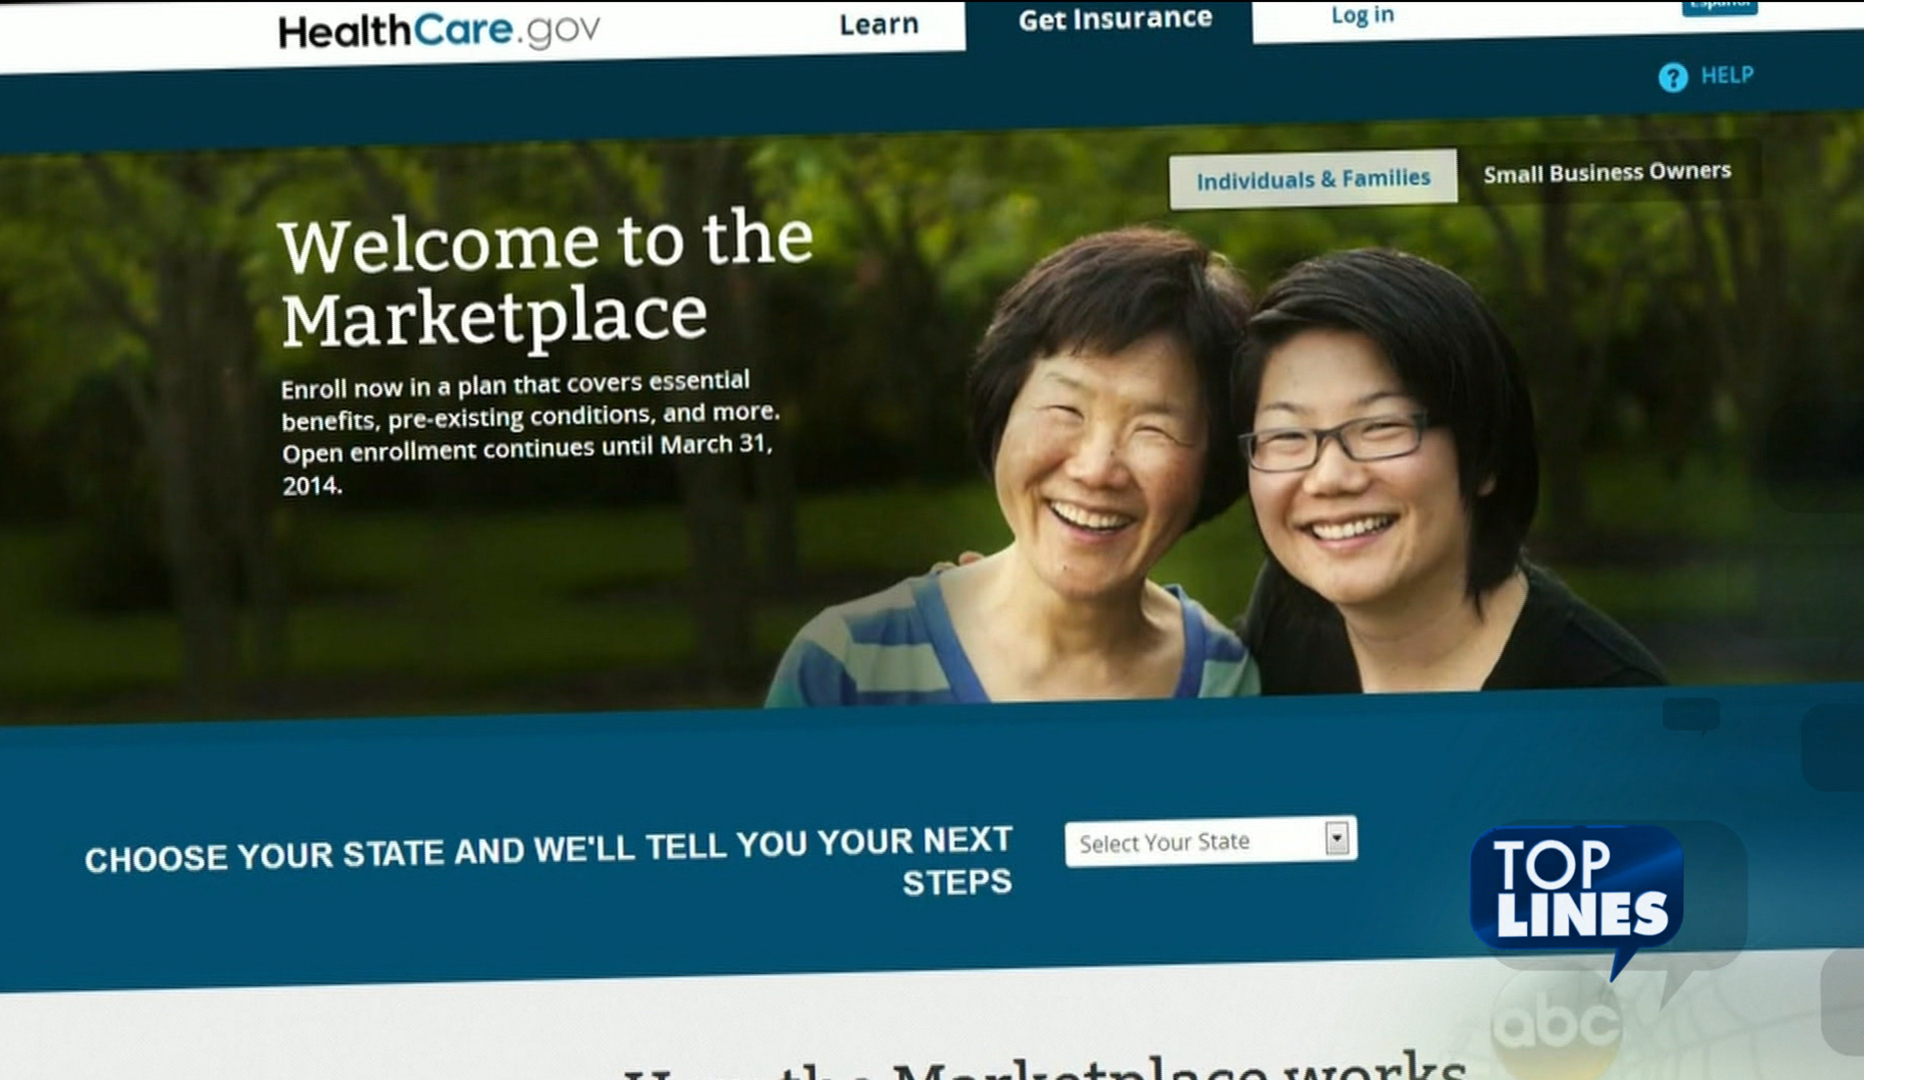 Top Lines: 'Chill out' on Obamacare exchanges